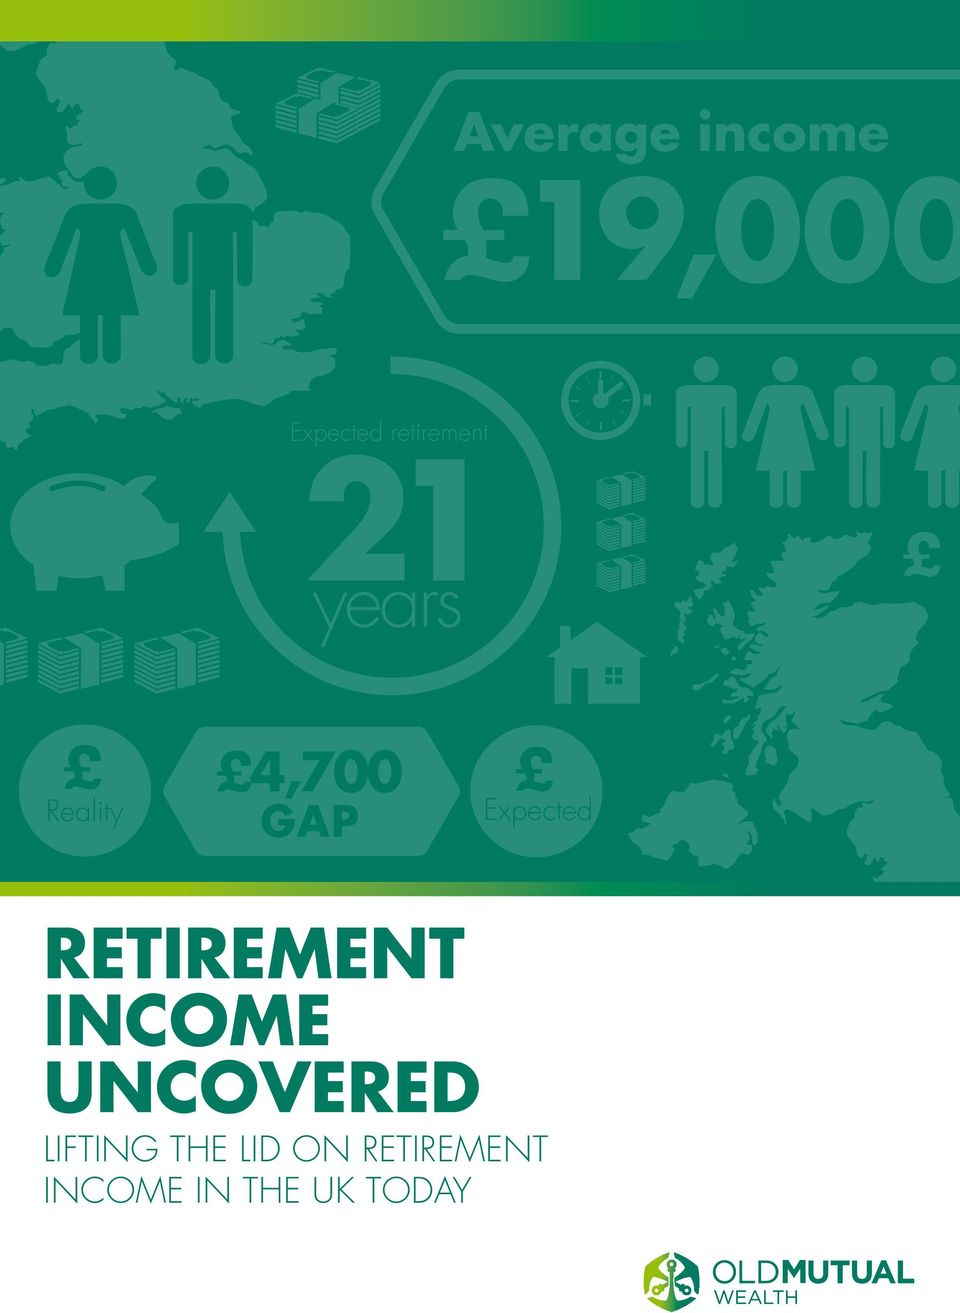 Expected Retirement Income Uncovered